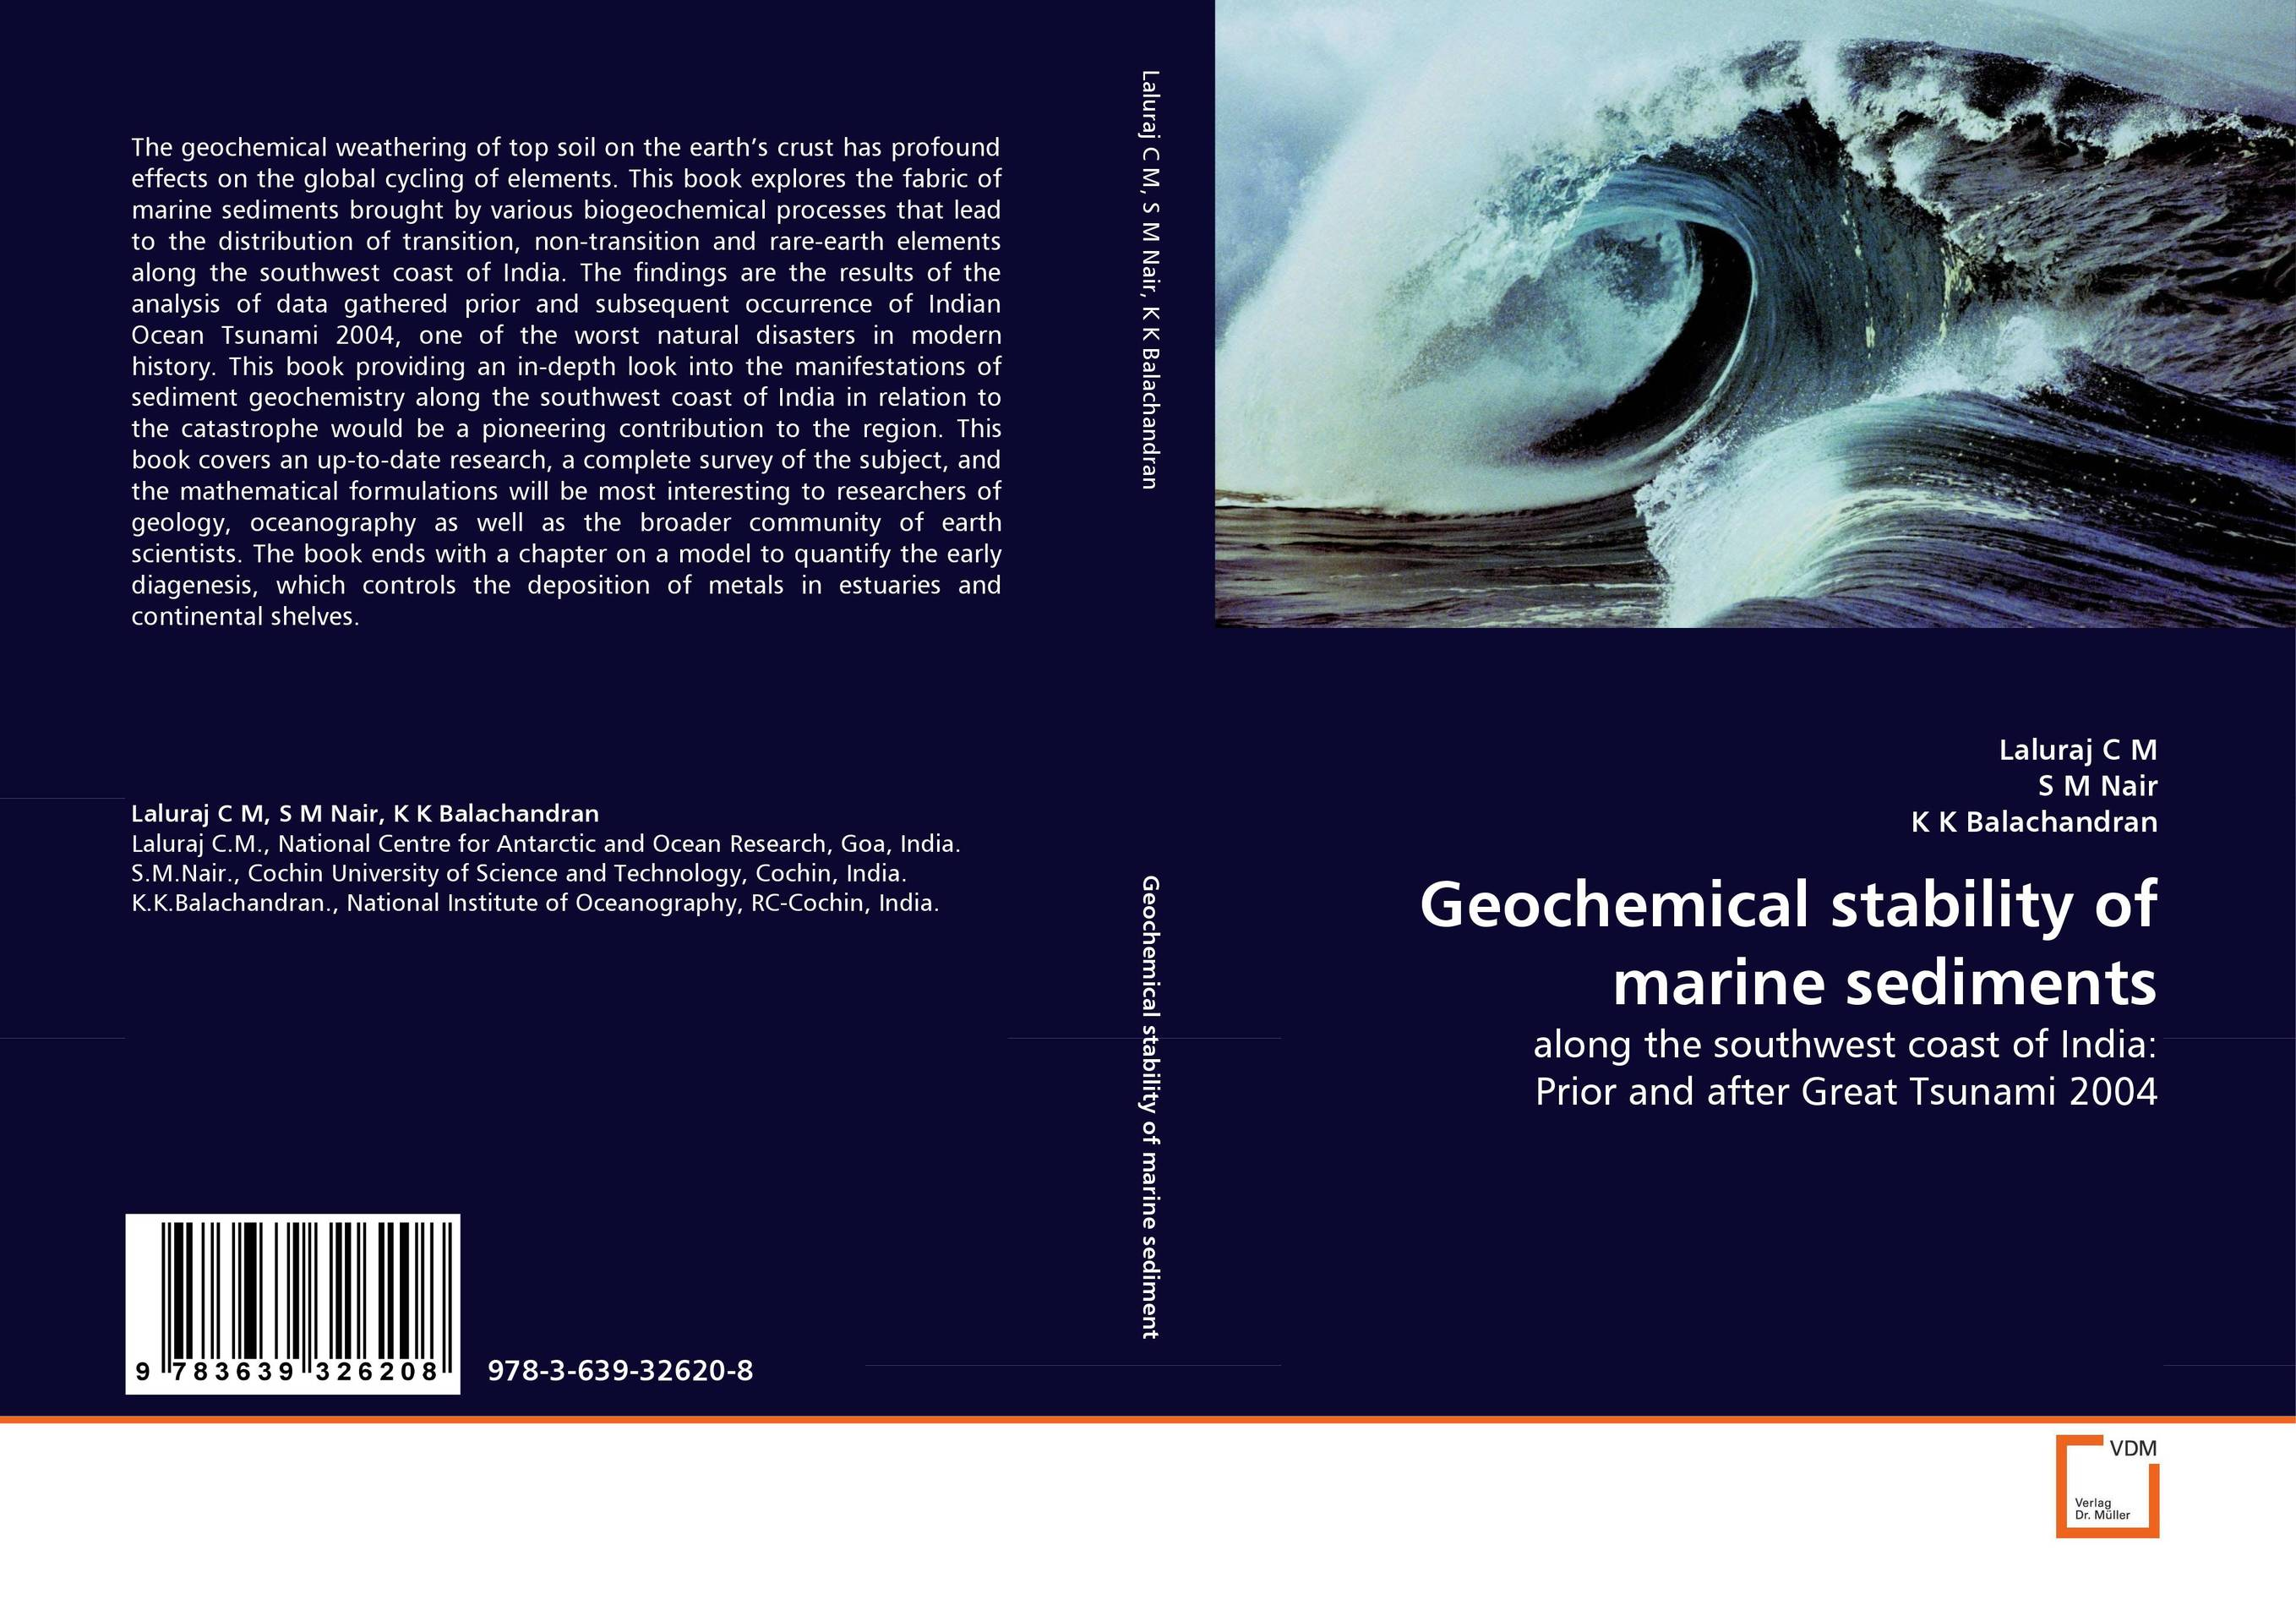 Geochemical stability of marine sediments david atwood a the rare earth elements fundamentals and applications